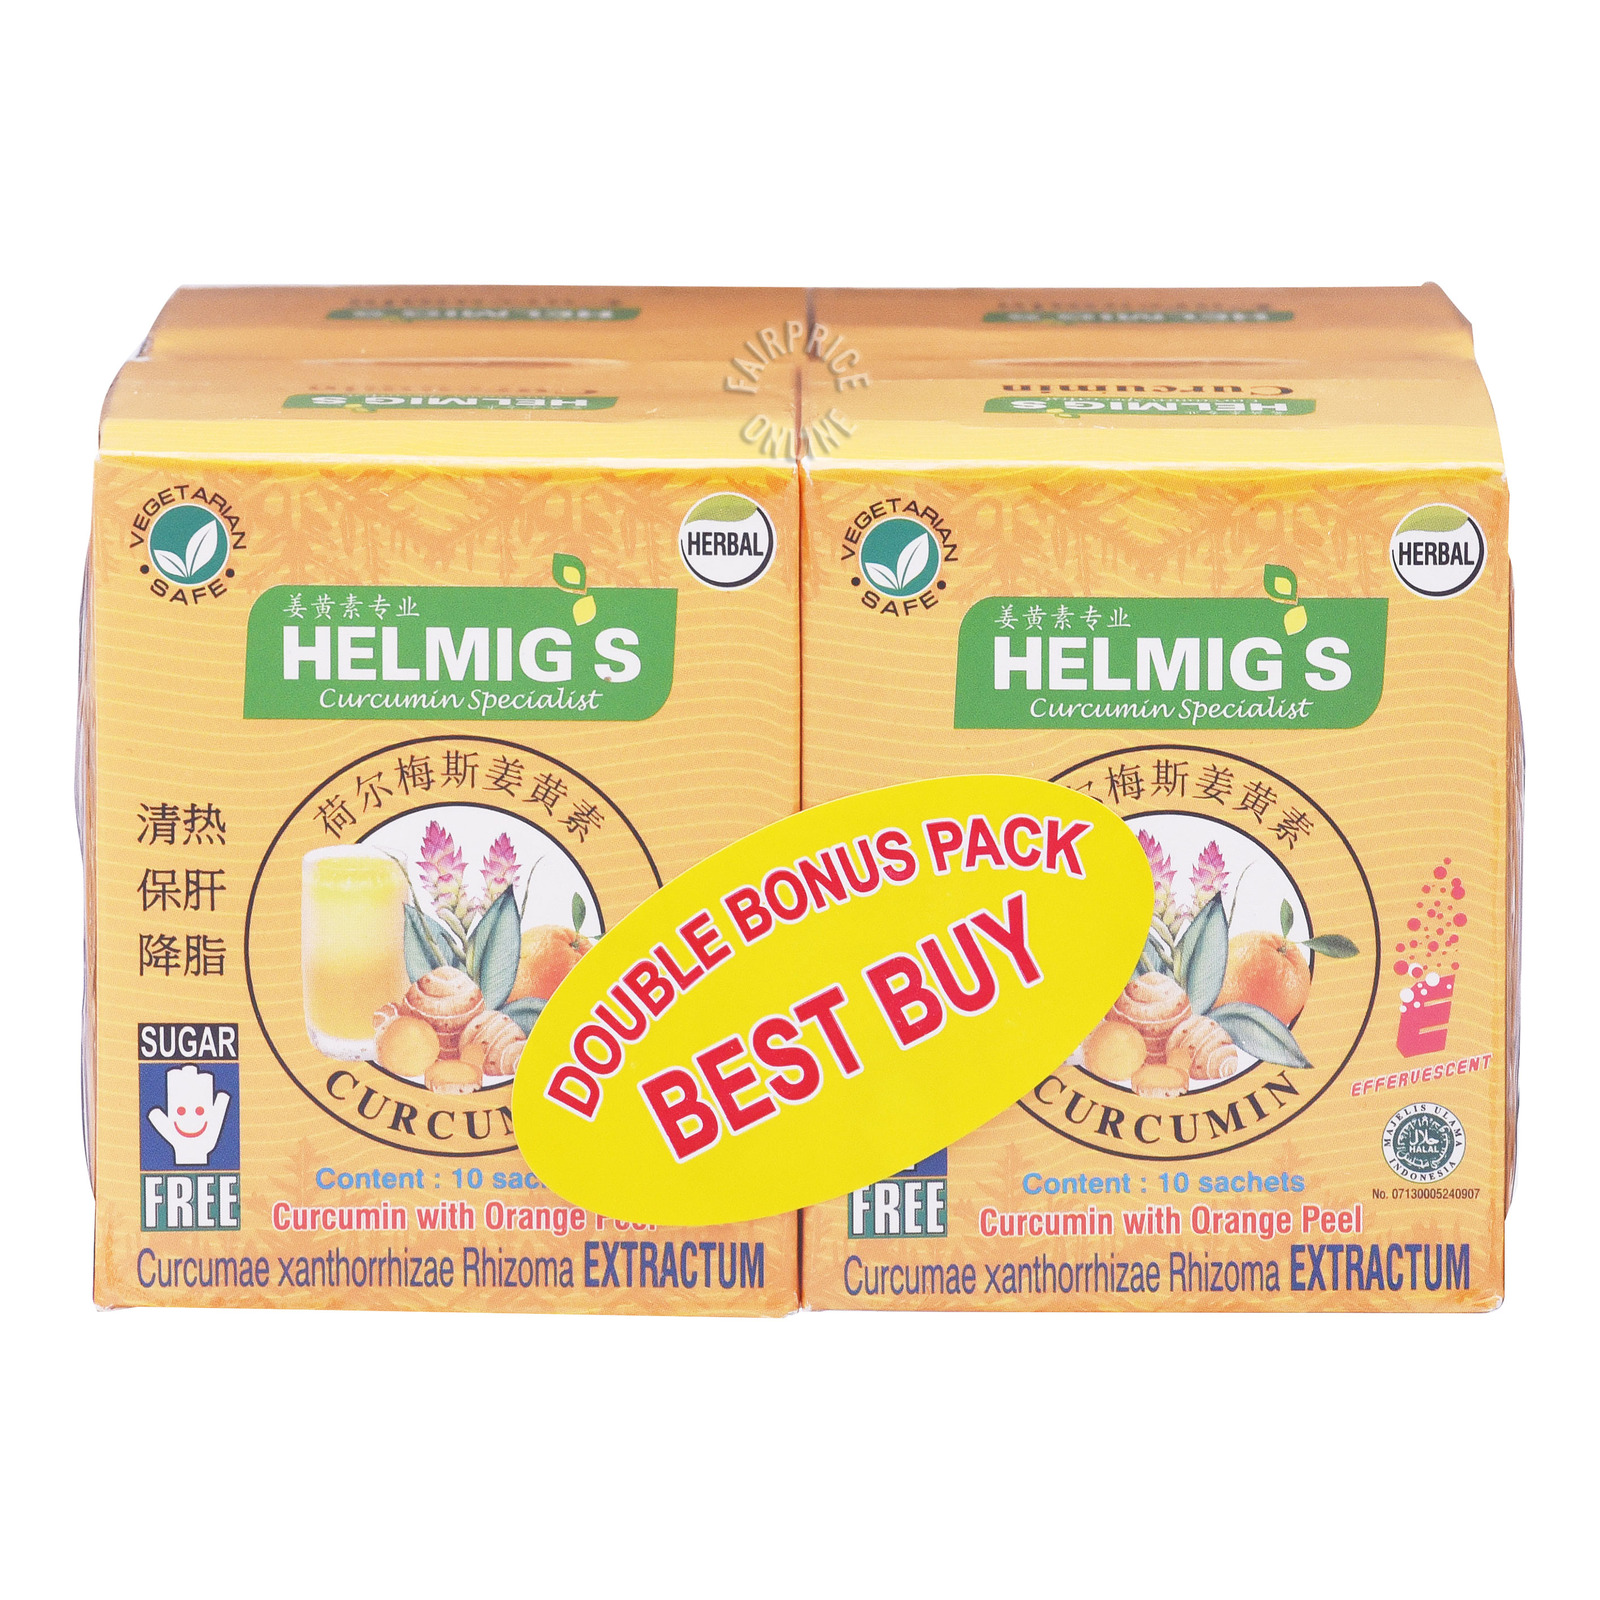 Helmig's Curcumin Sachets - Orange Peel